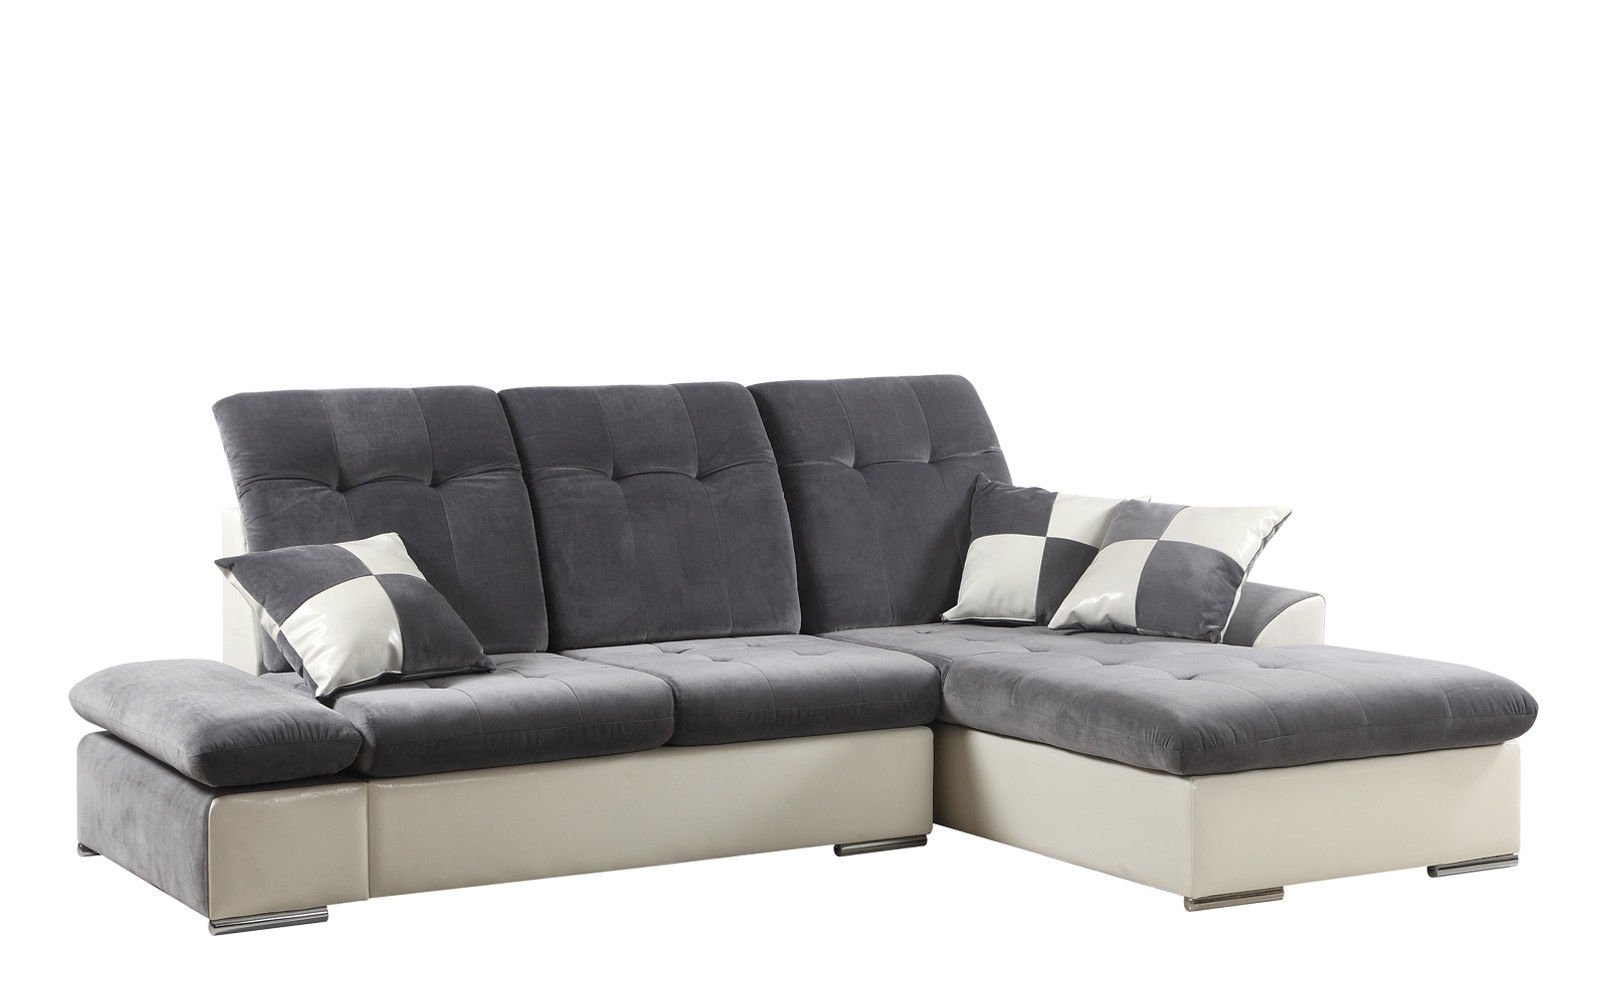 Modern Microfiber Sectional Sofa With Chaise - L Shape Couch (Dark ...